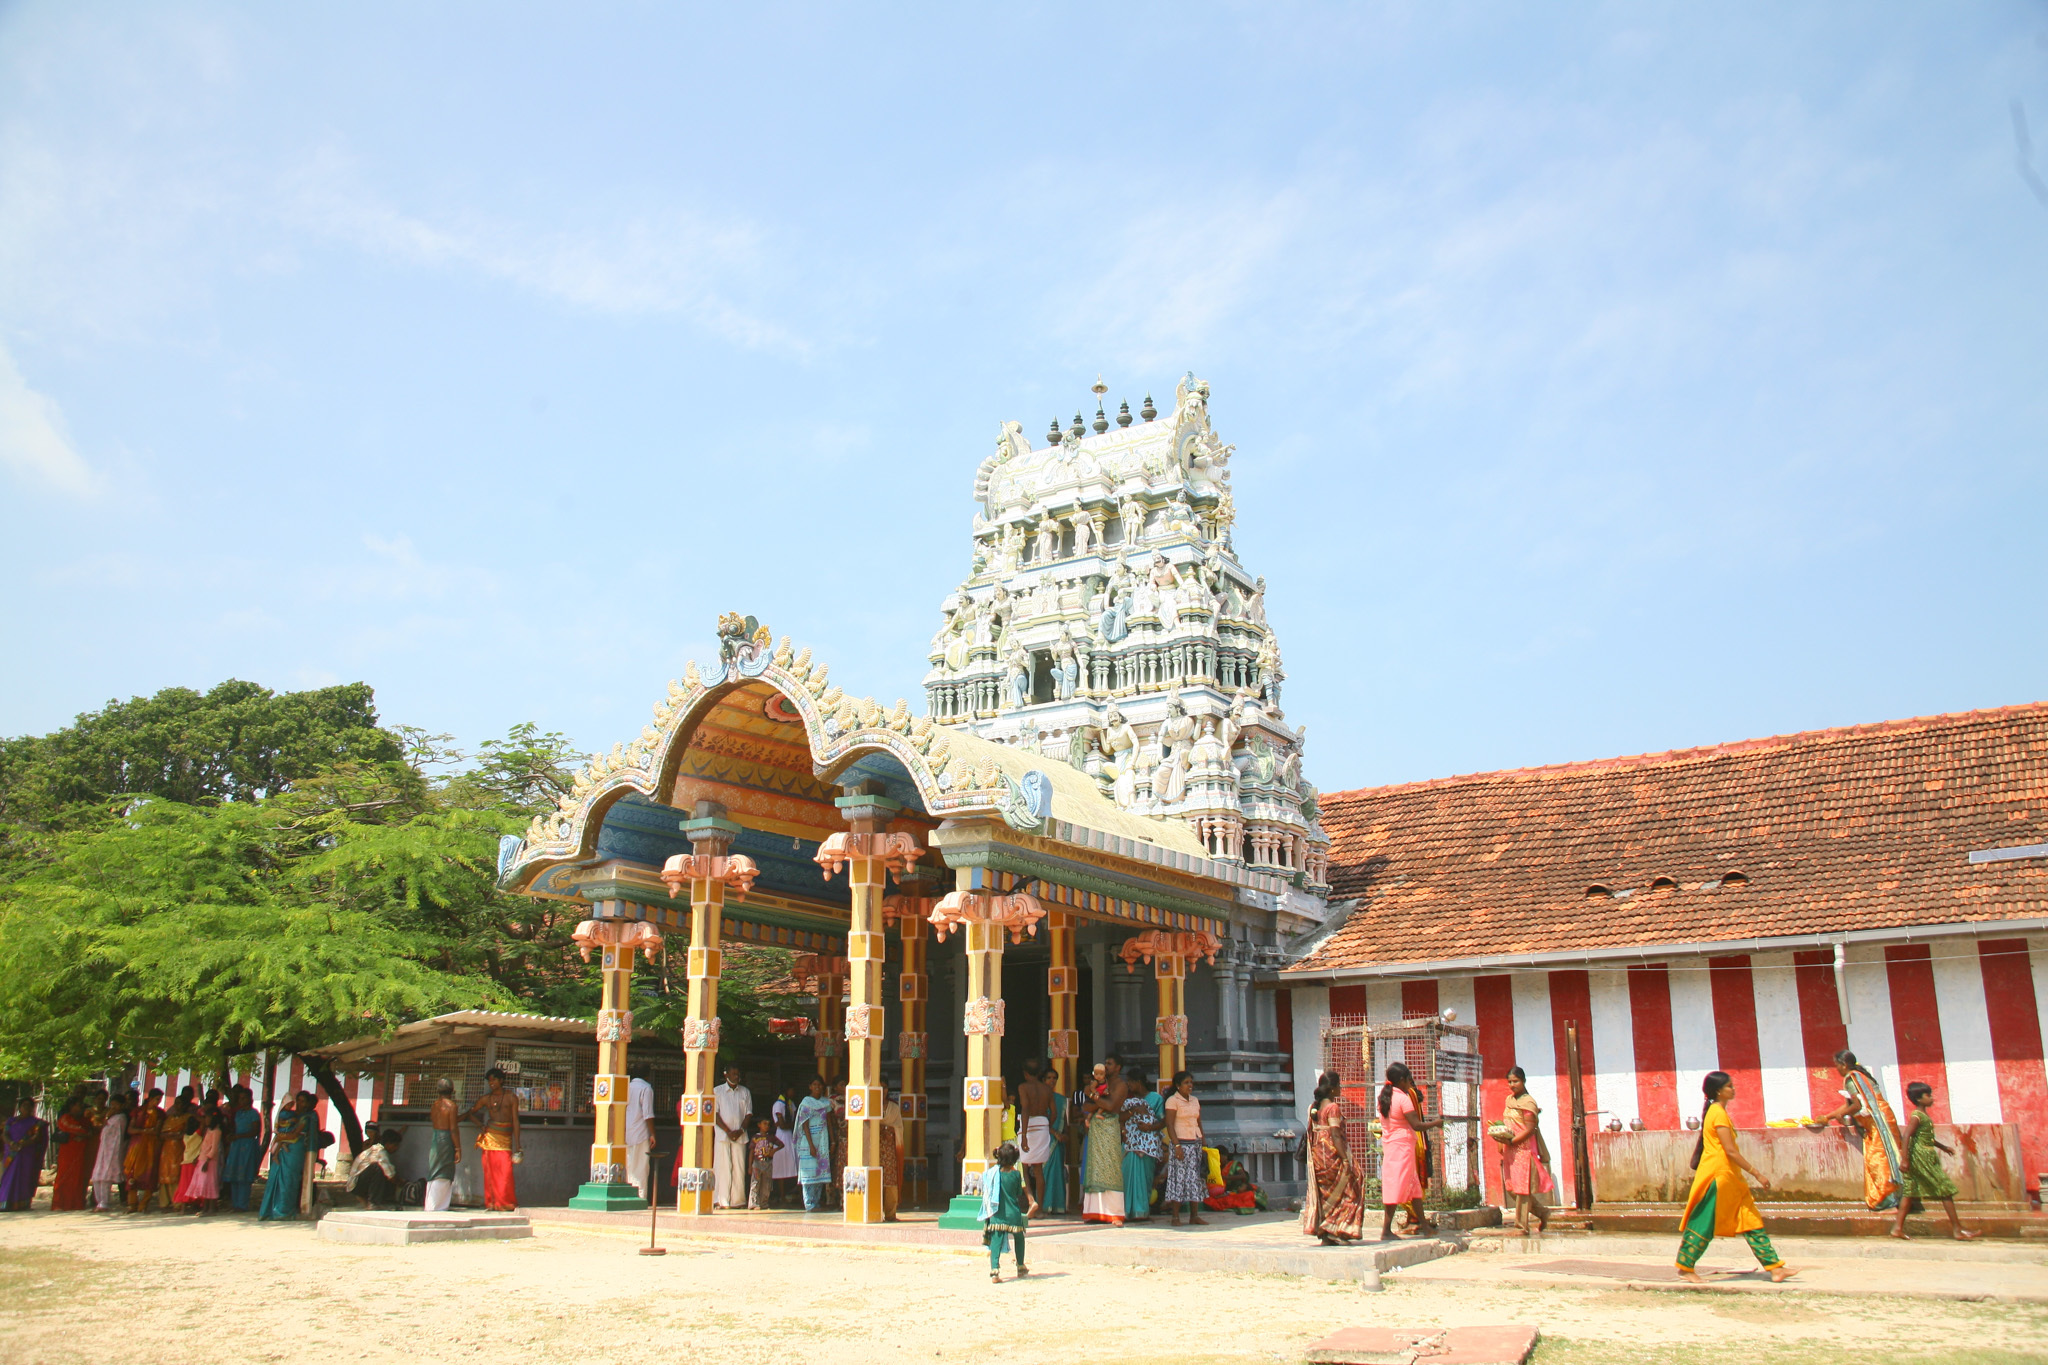 Nagapooshani Amman Kovil is a kovil in Jaffna